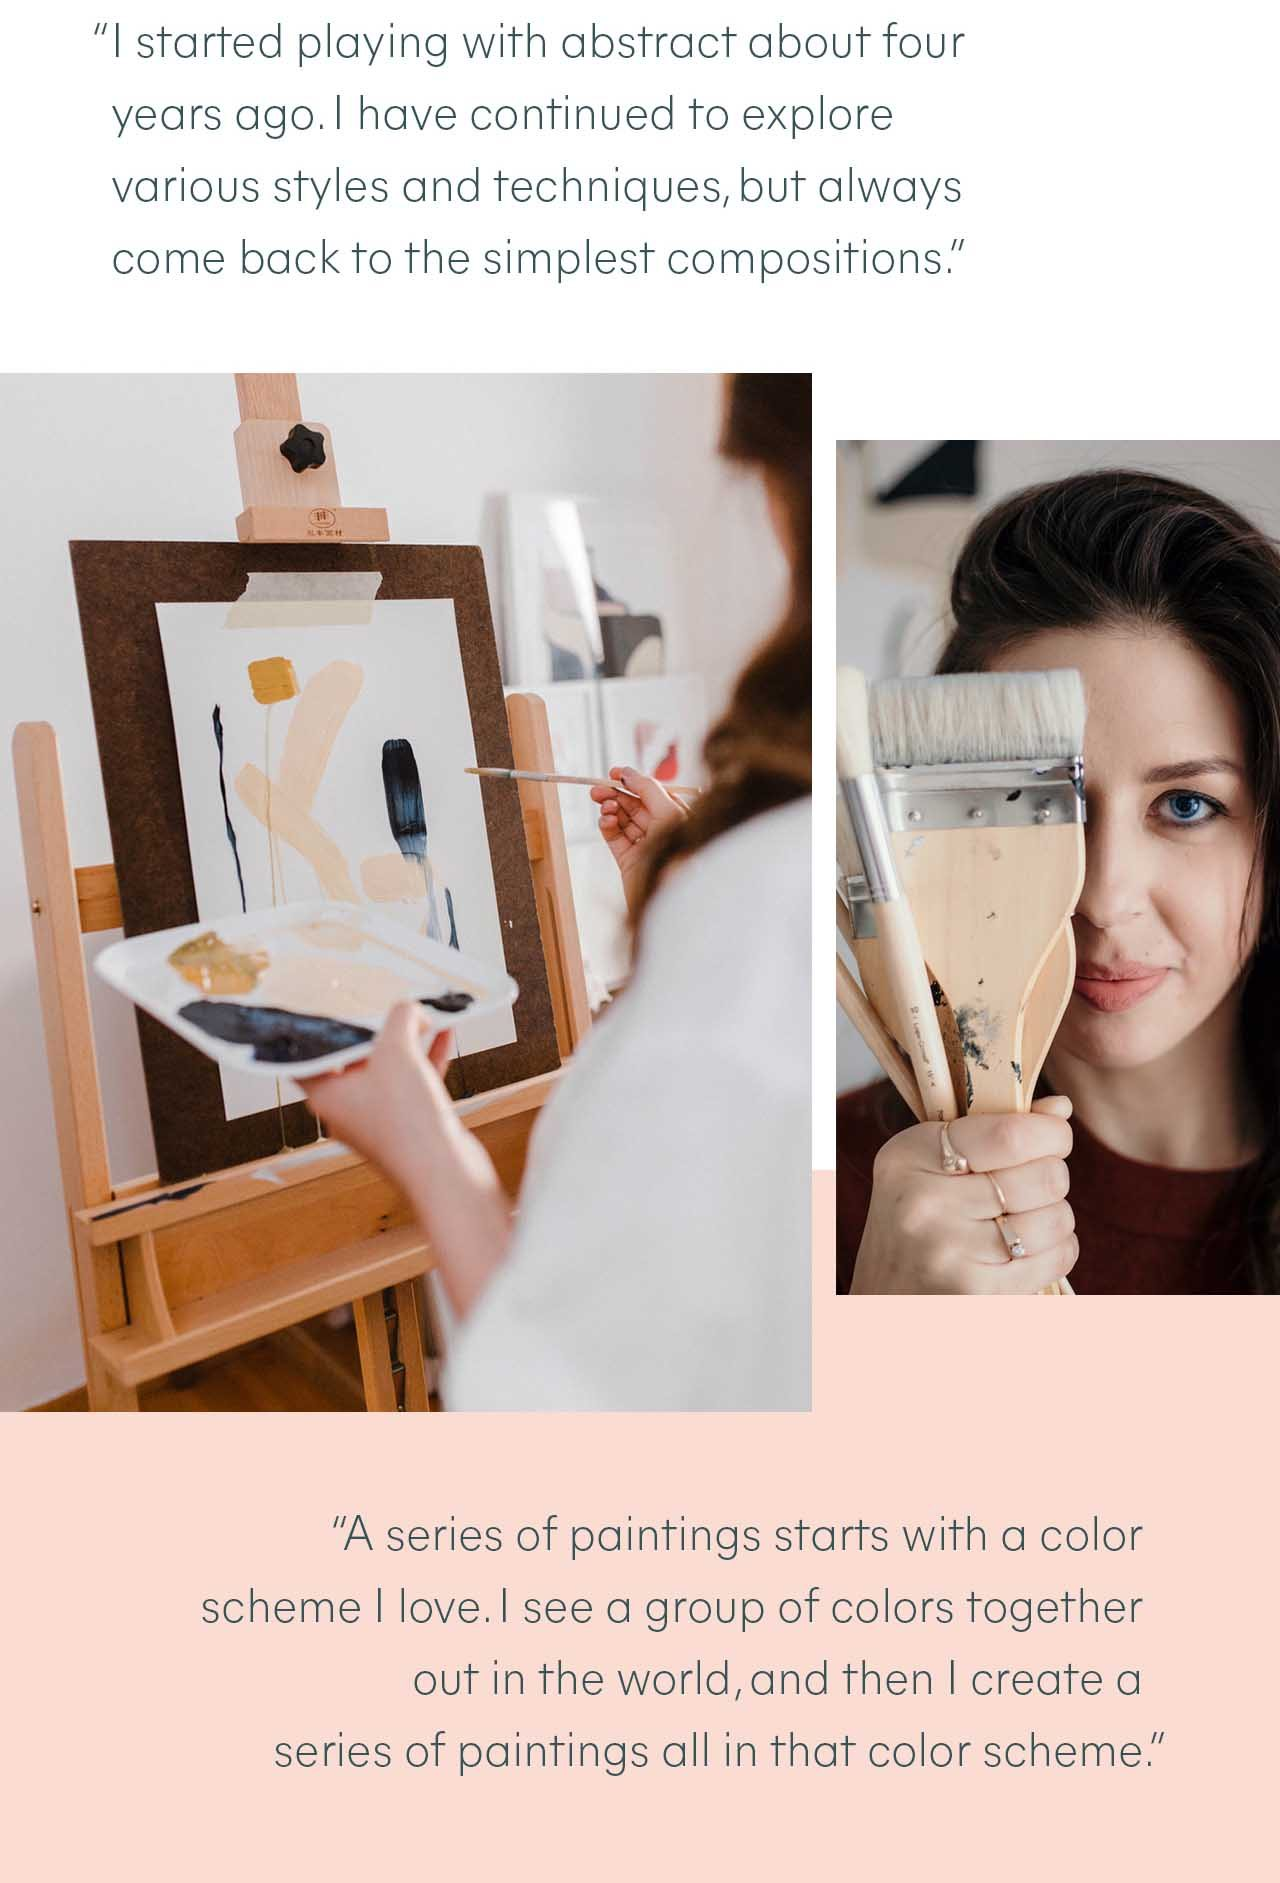 Courneya's Painting Styles